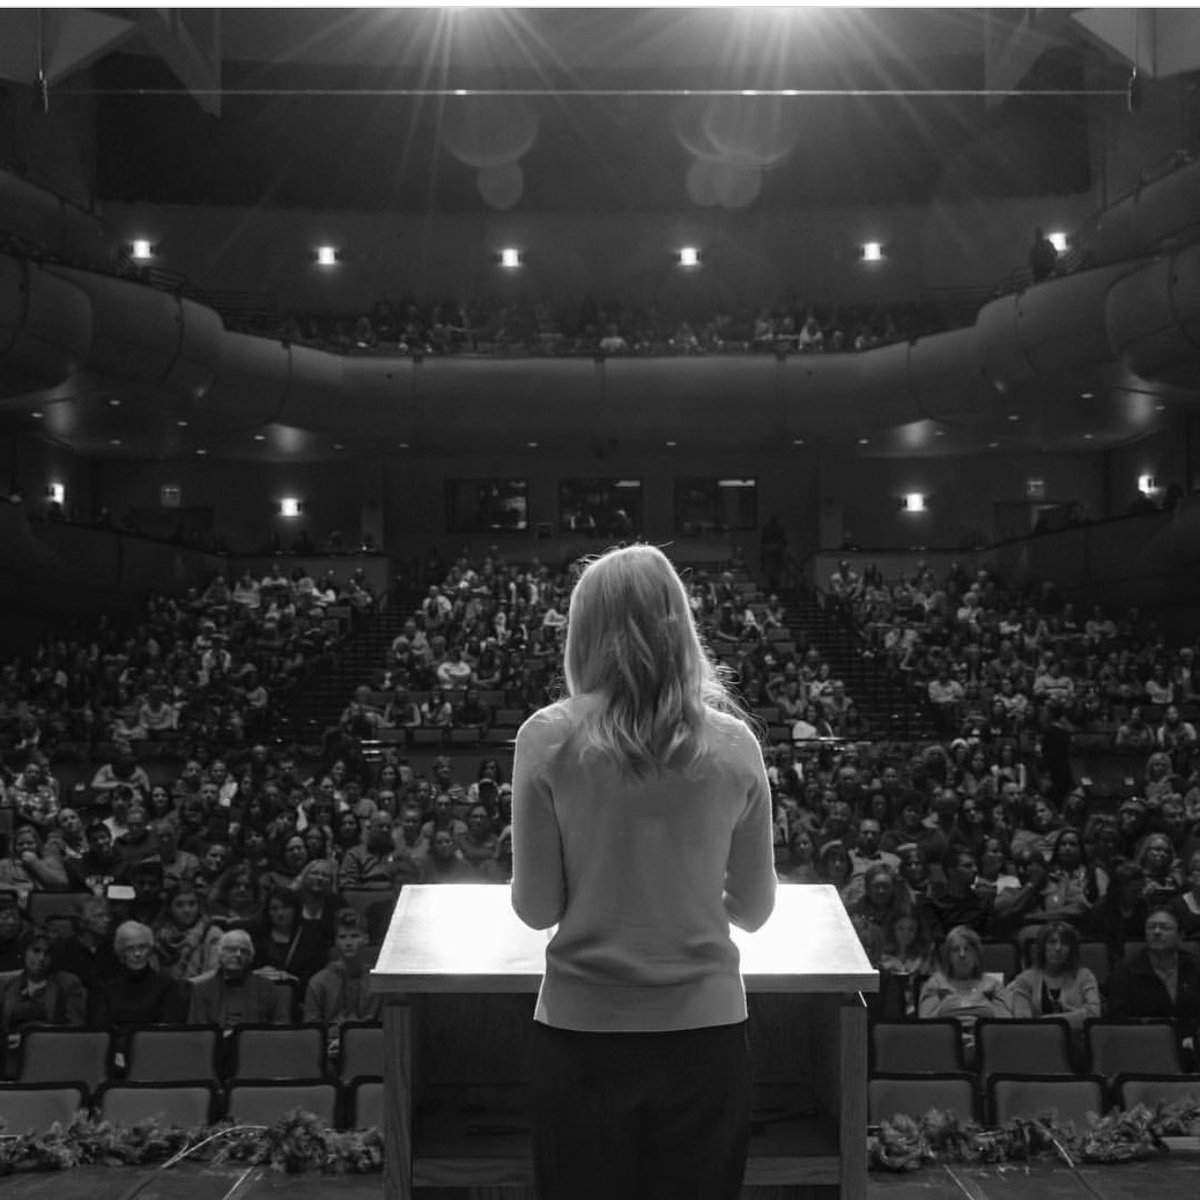 A few weeks ago I had the opportunity to speak at Idaho State University @idahostateu and was reminded of how important it is for each of us to be a little kinder to each other. Every person has a story. Every person needs kindness. #KindnessMatters #Kindness #elizabethsmart